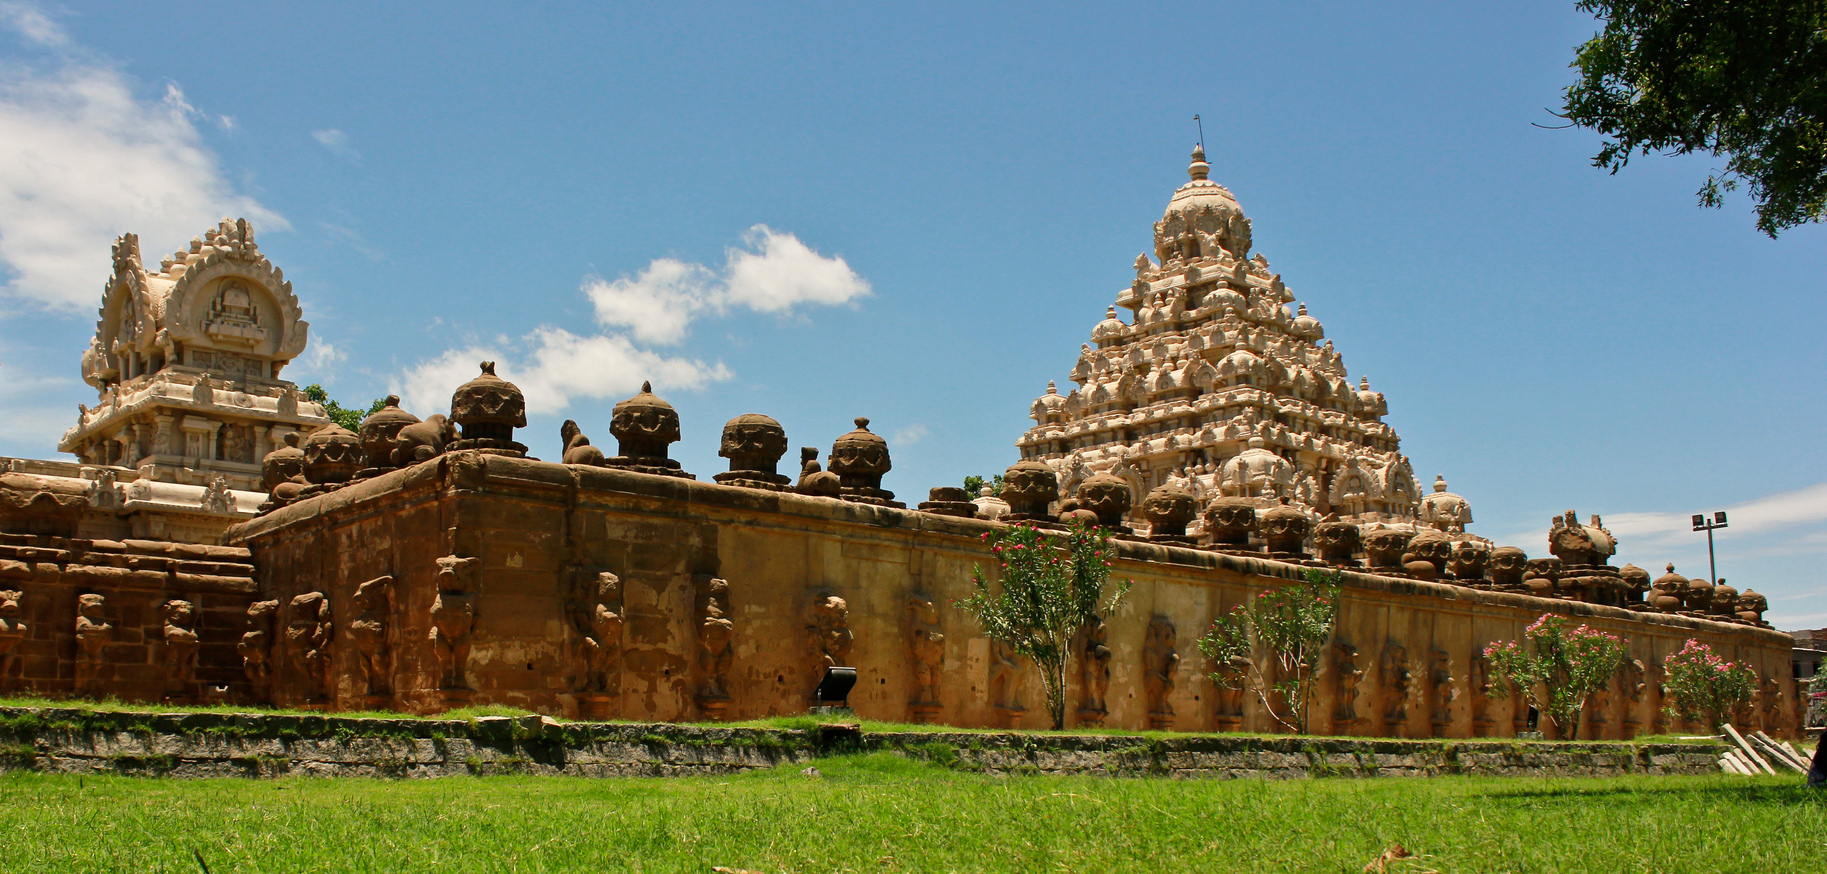 Kanchipuram India  city images : ... Kailasanathar temple is the oldest structure in Kanchipuram, TamilNadu